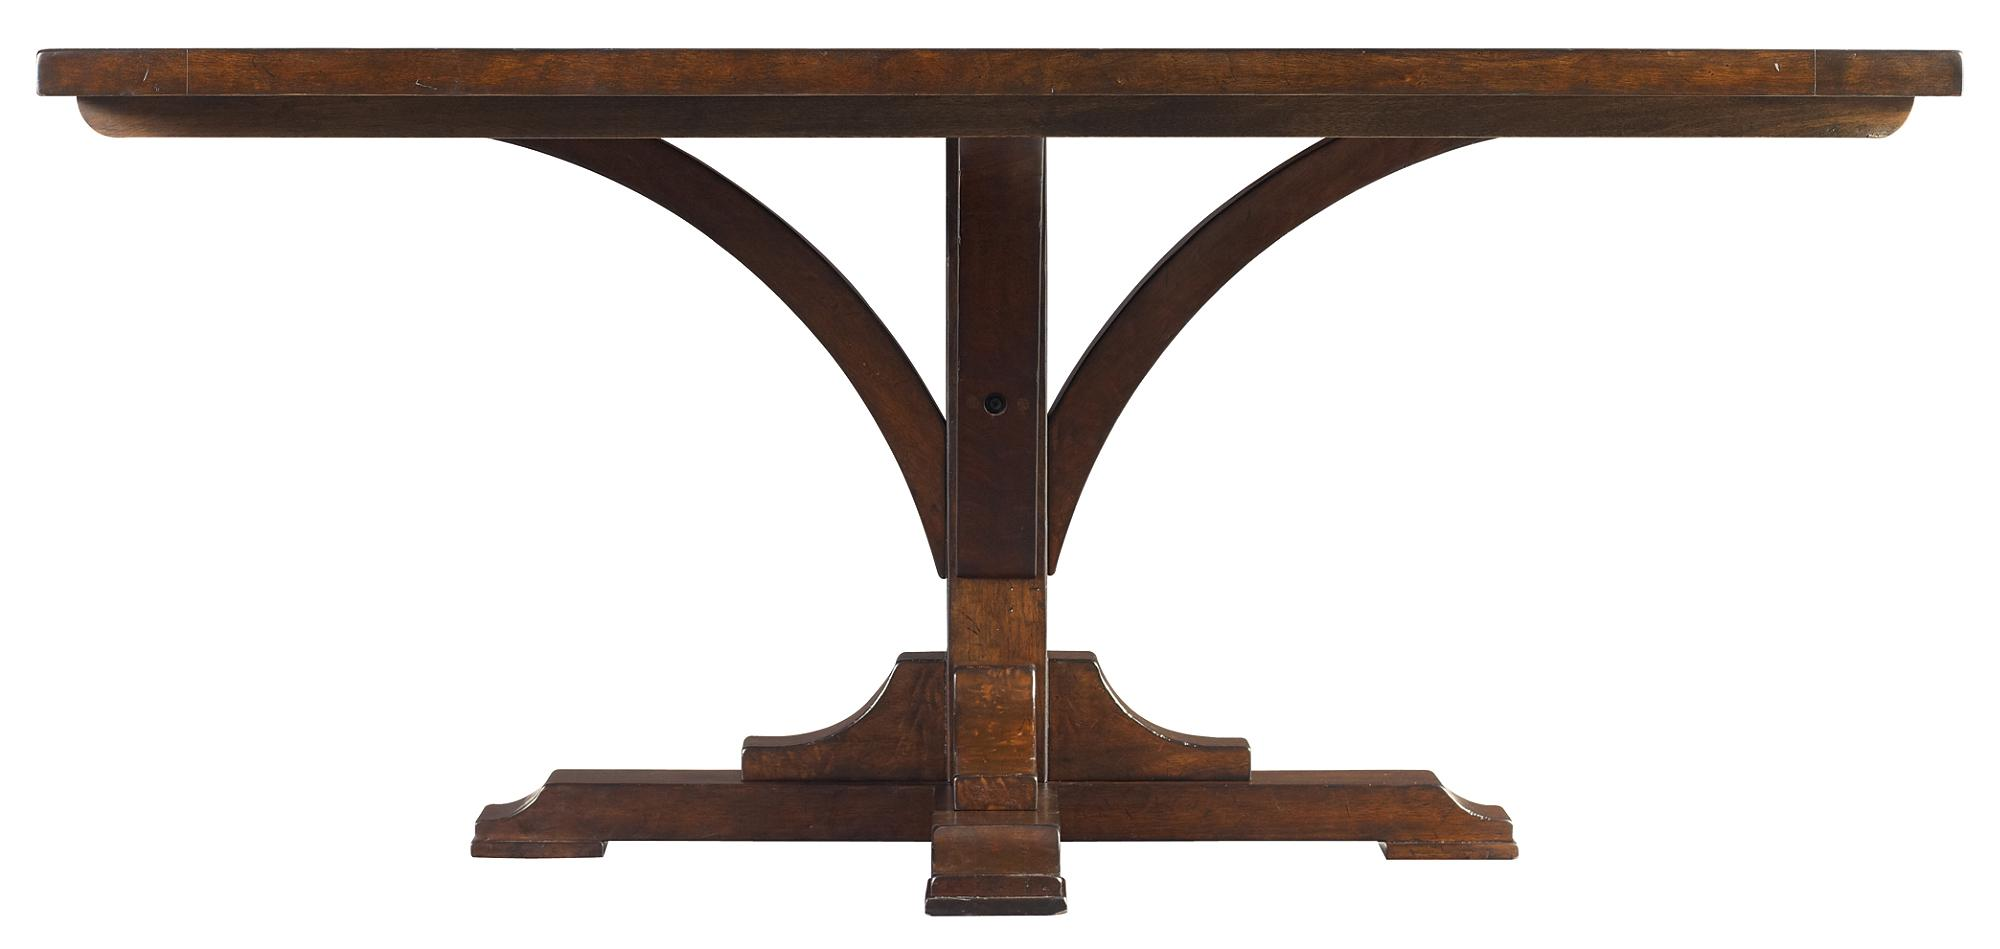 Stanley Furniture The Classic Portfolio Artisan Pedestal Table - Item Number: 135-11-236+136